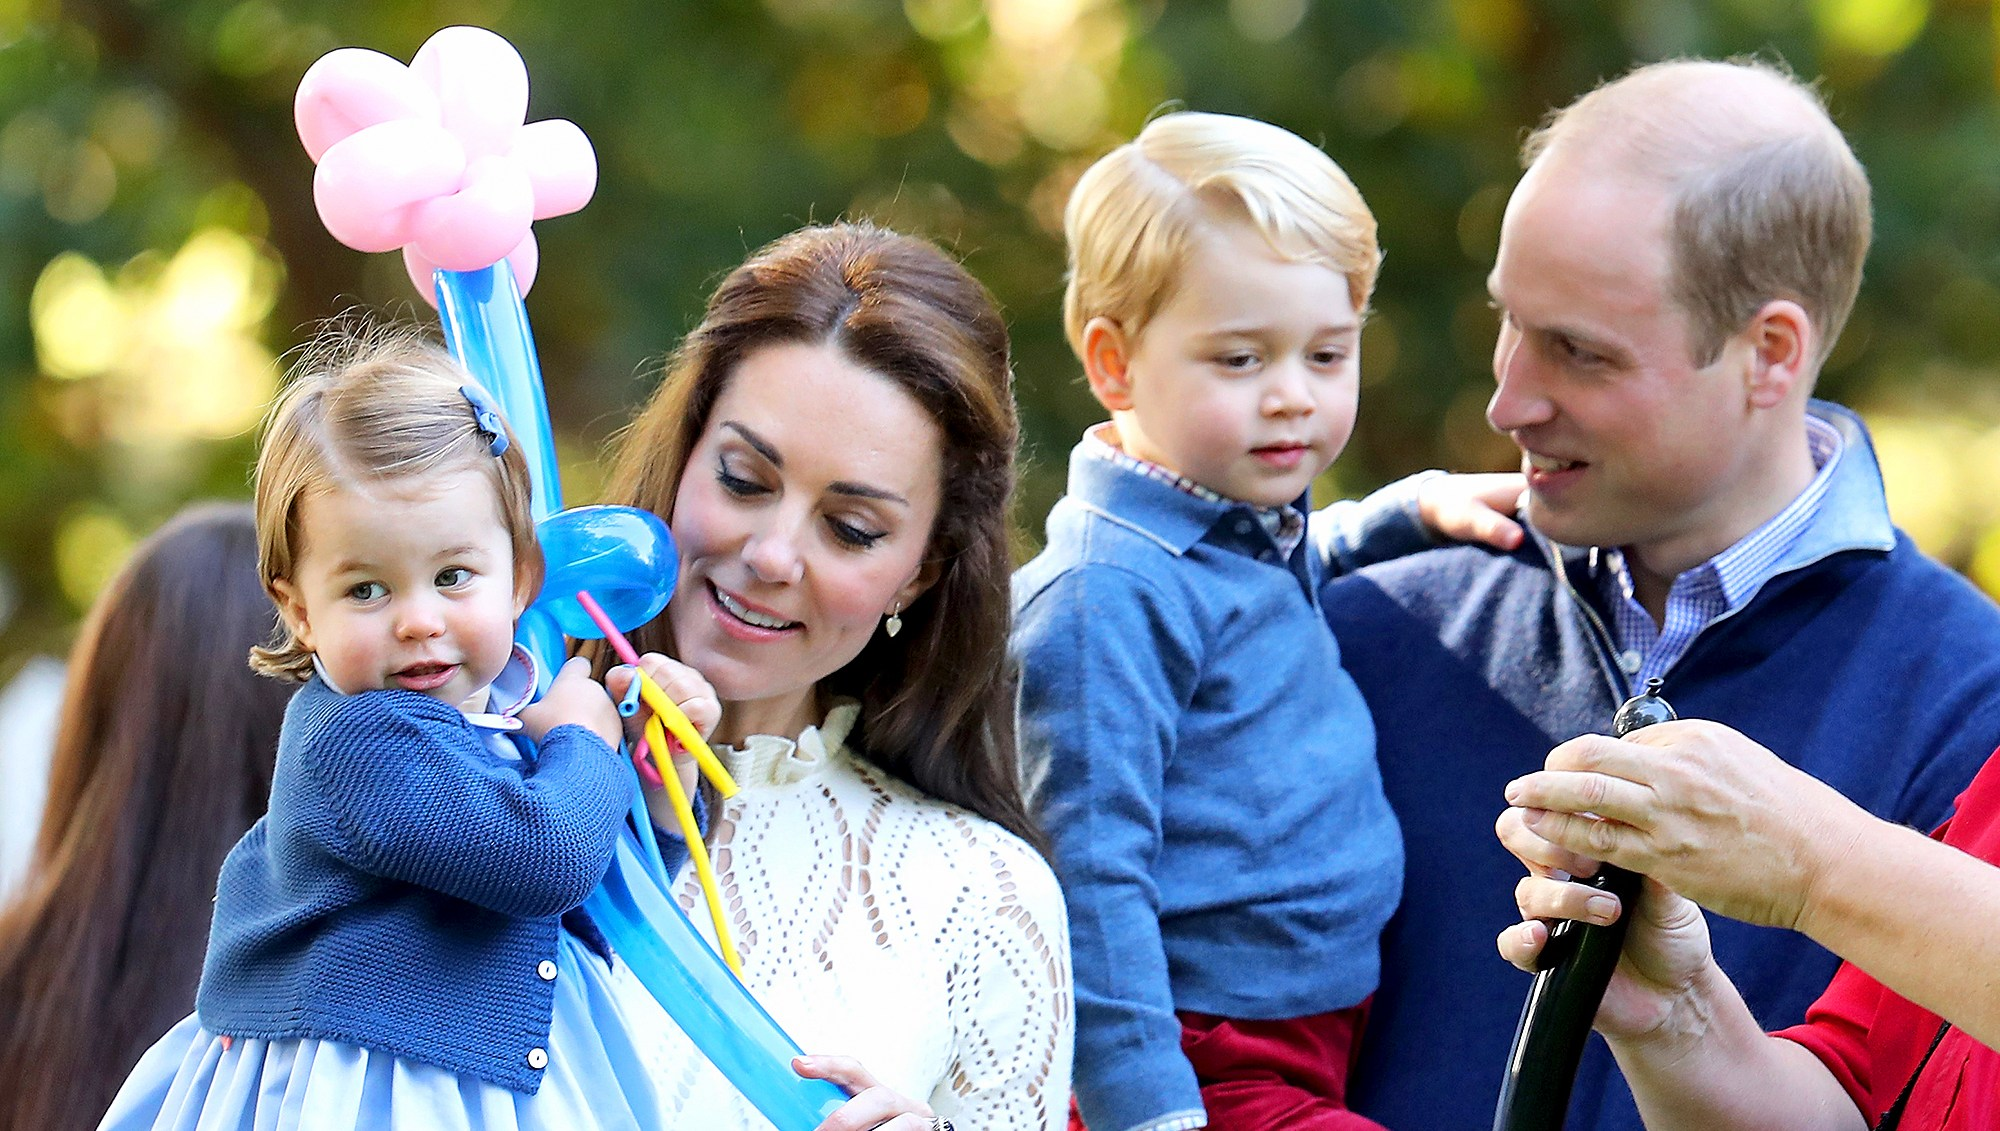 Catherine, Duchess of Cambridge, Princess Charlotte of Cambridge and Prince George of Cambridge, Prince William, Duke of Cambridge at a children's party for Military families during the Royal Tour of Canada on September 29, 2016 in Victoria, Canada.